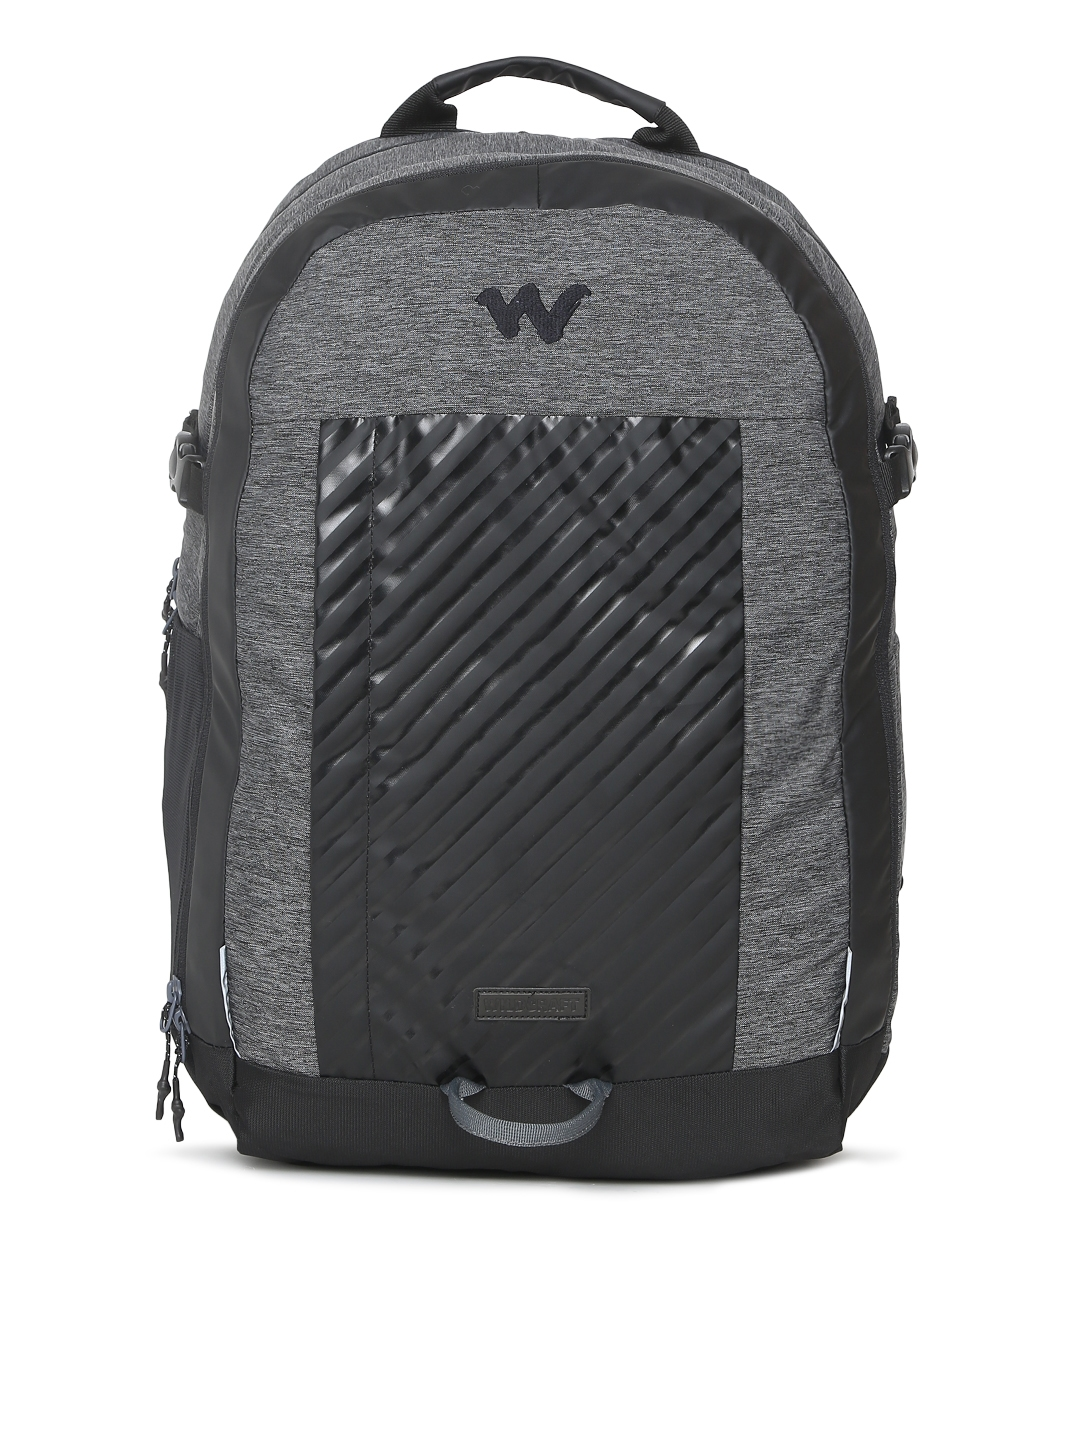 Wildcraft Unisex Grey   Black Colourblocked Acer Laptop Backpack